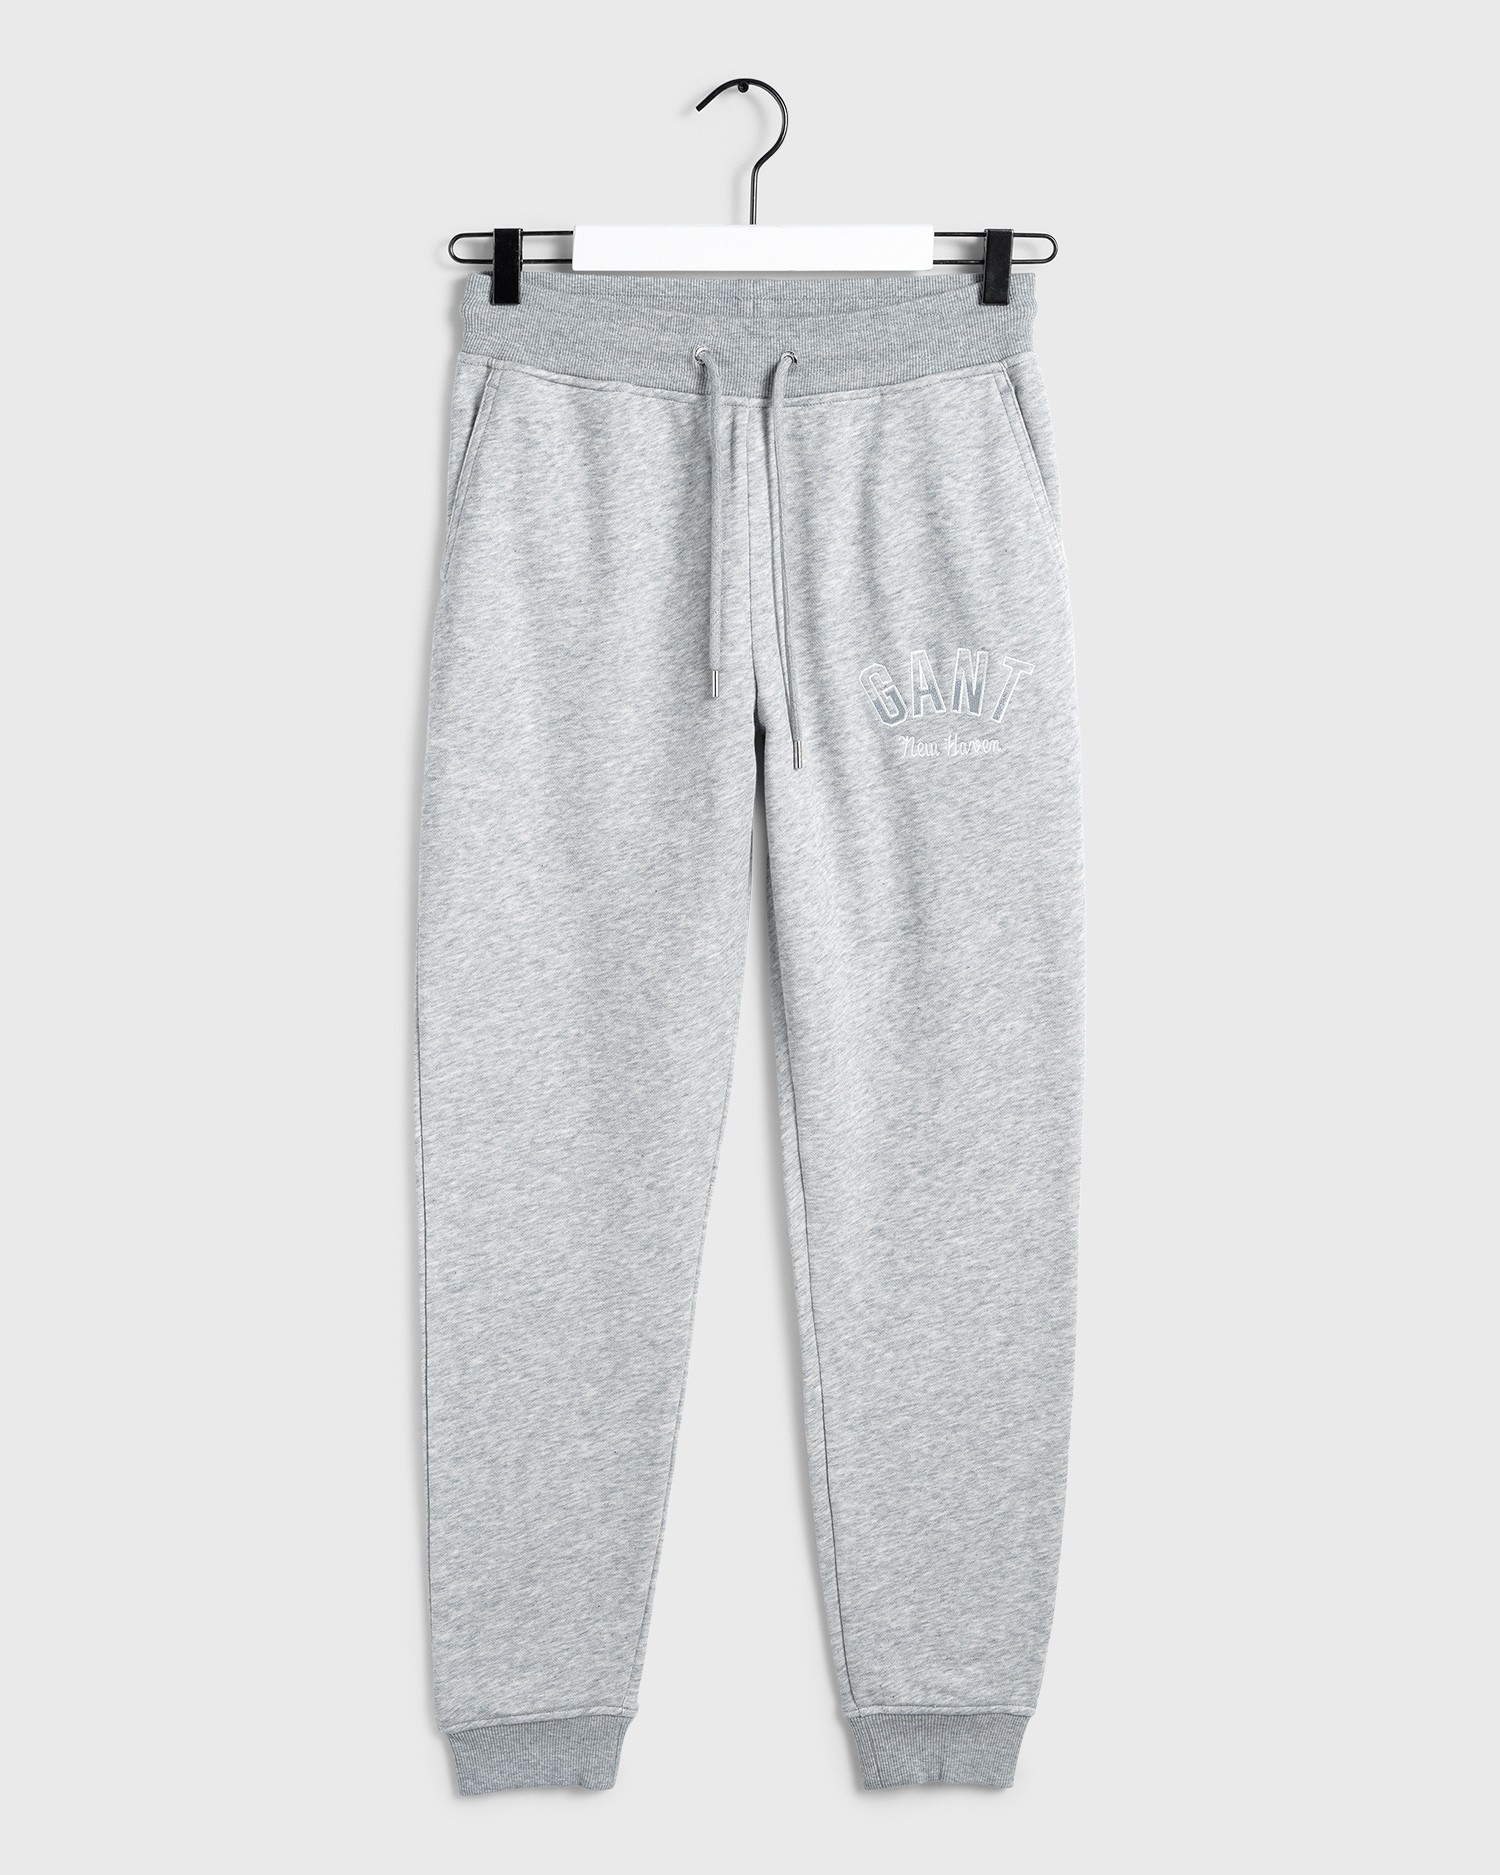 GANT Women's Sweatpants - 4204907